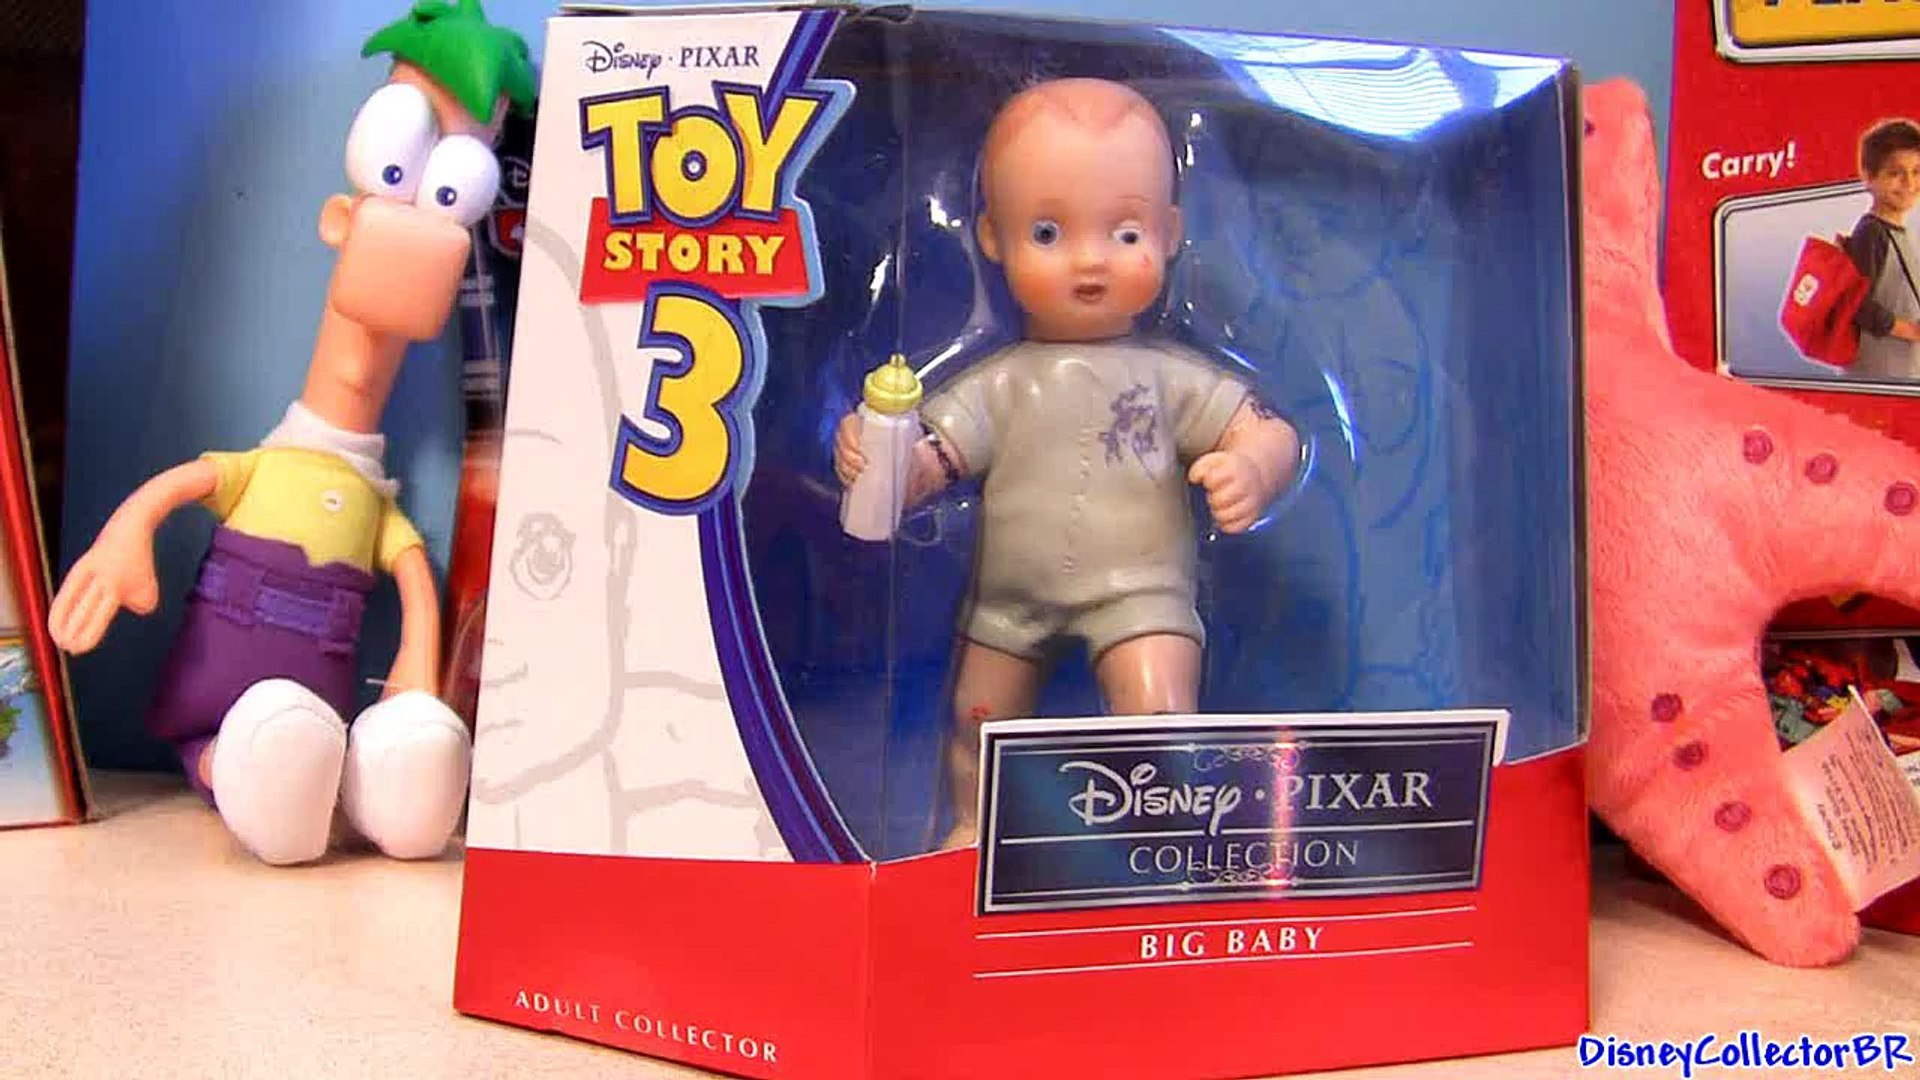 Toy Story 3 Big Baby Collectible Deluxe Figure Toy Story 3 Collection Disney doll